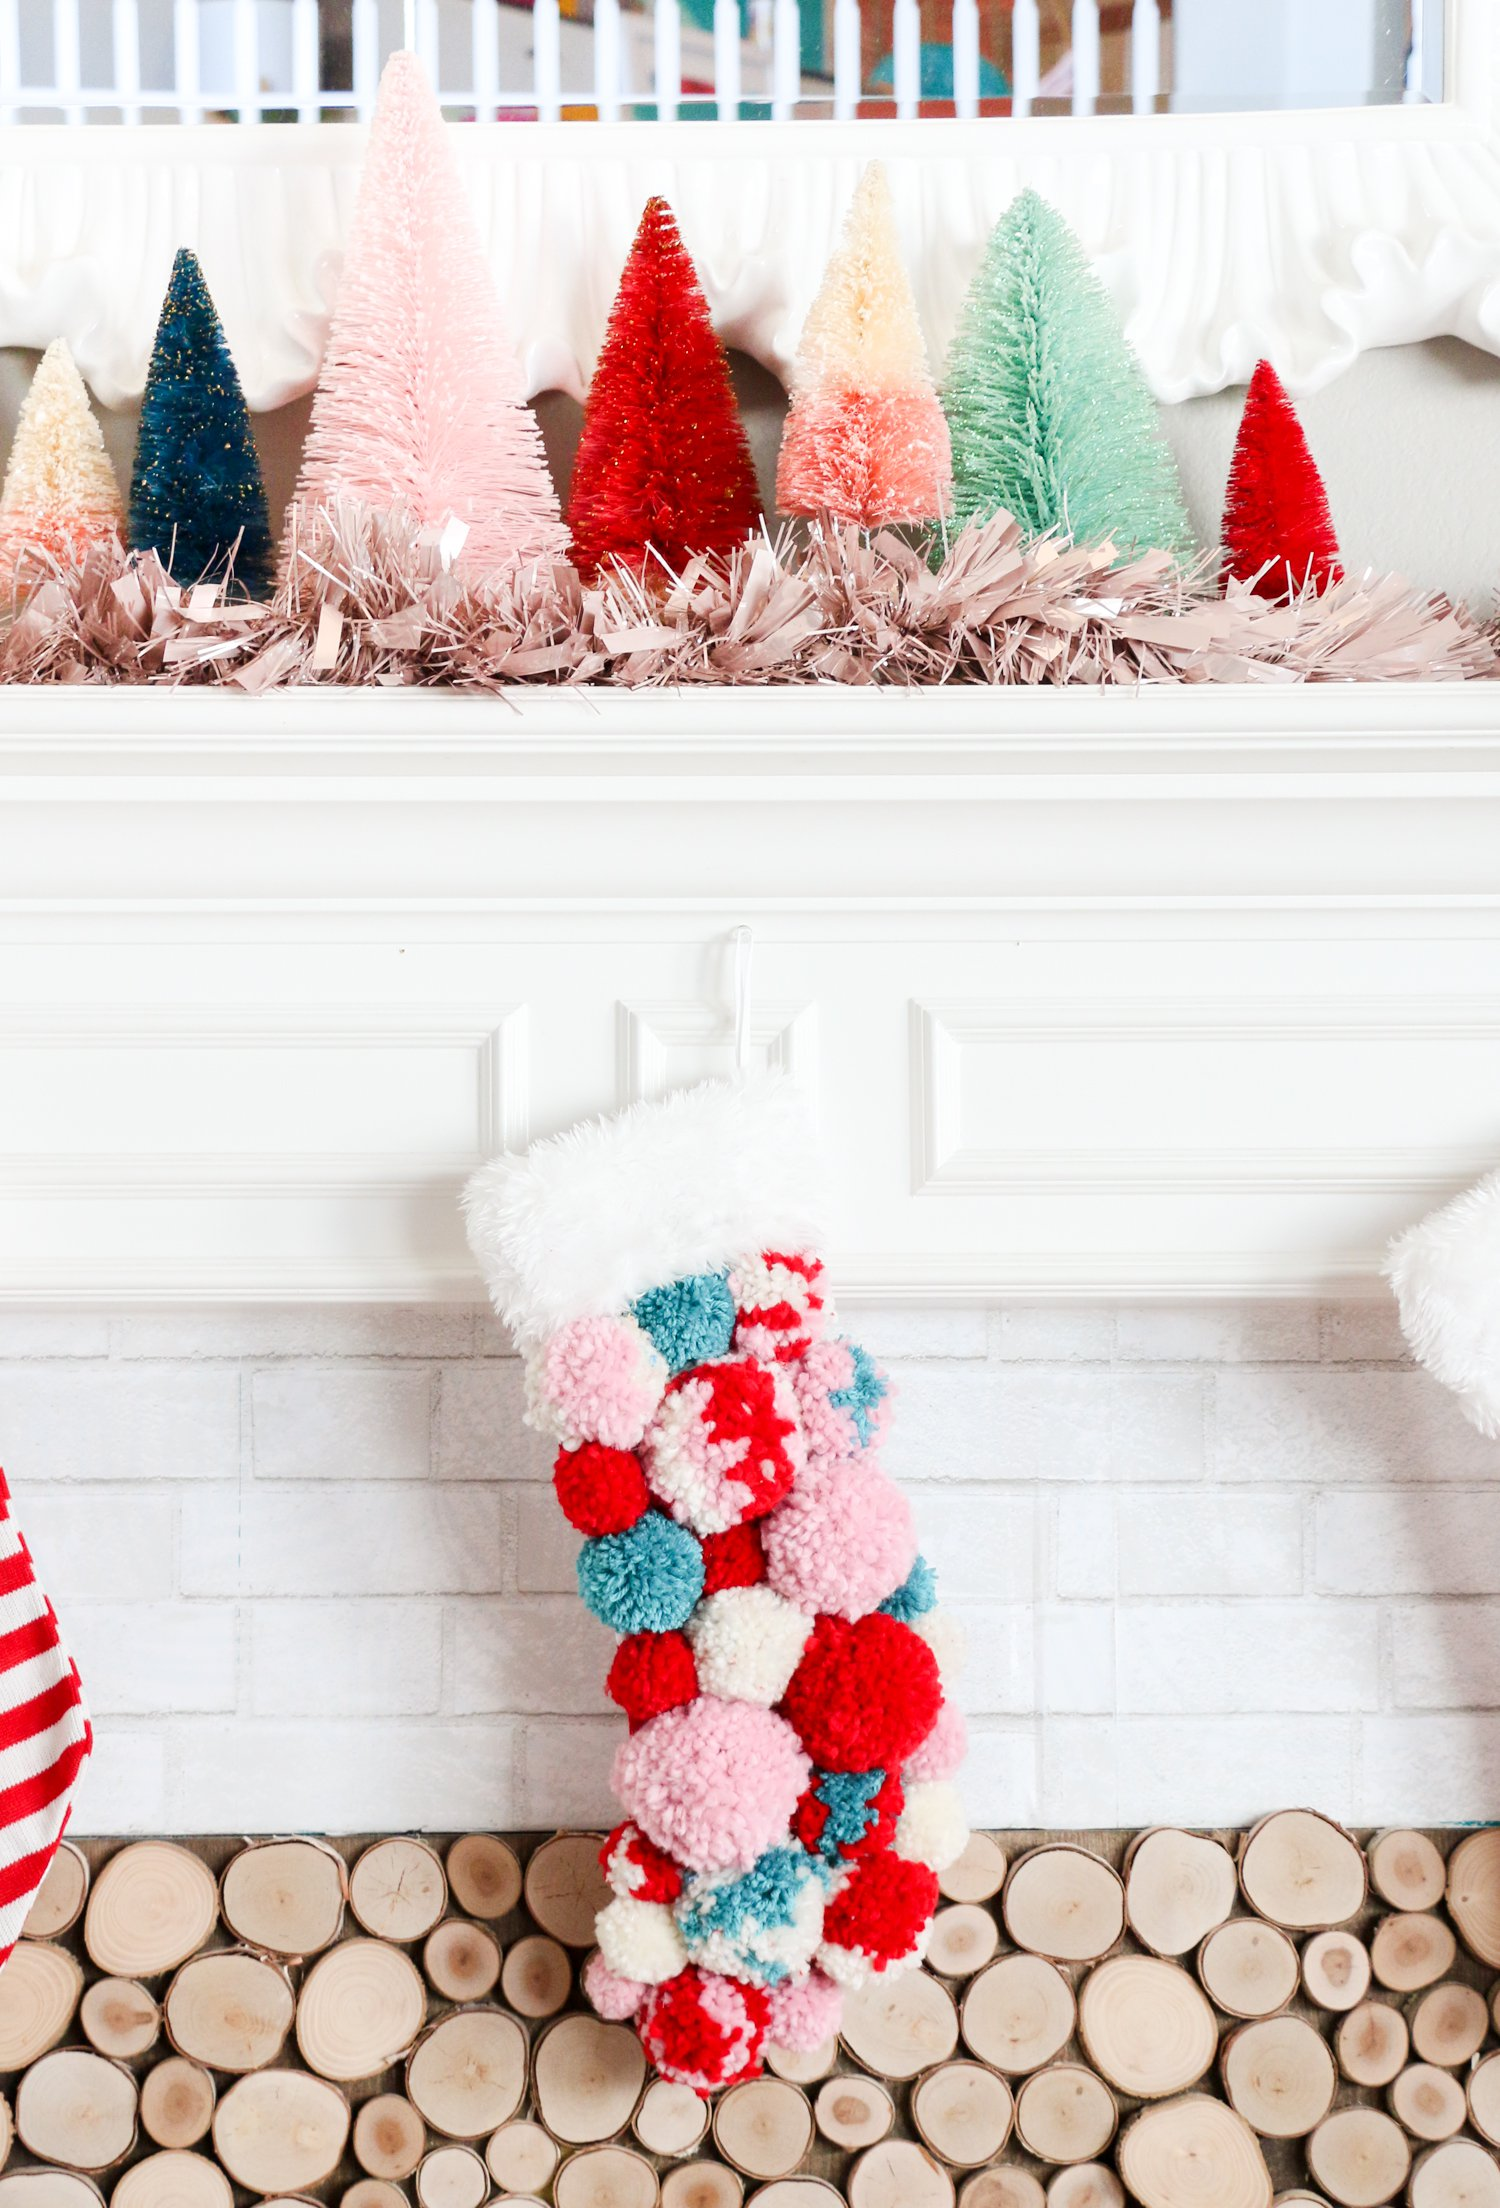 Christmas Tree Decorations Fluffy Unicorn Ornaments Fur Ball Pom Pom Horse Pendant New Year Gifts Decorations 2019 Momadvice